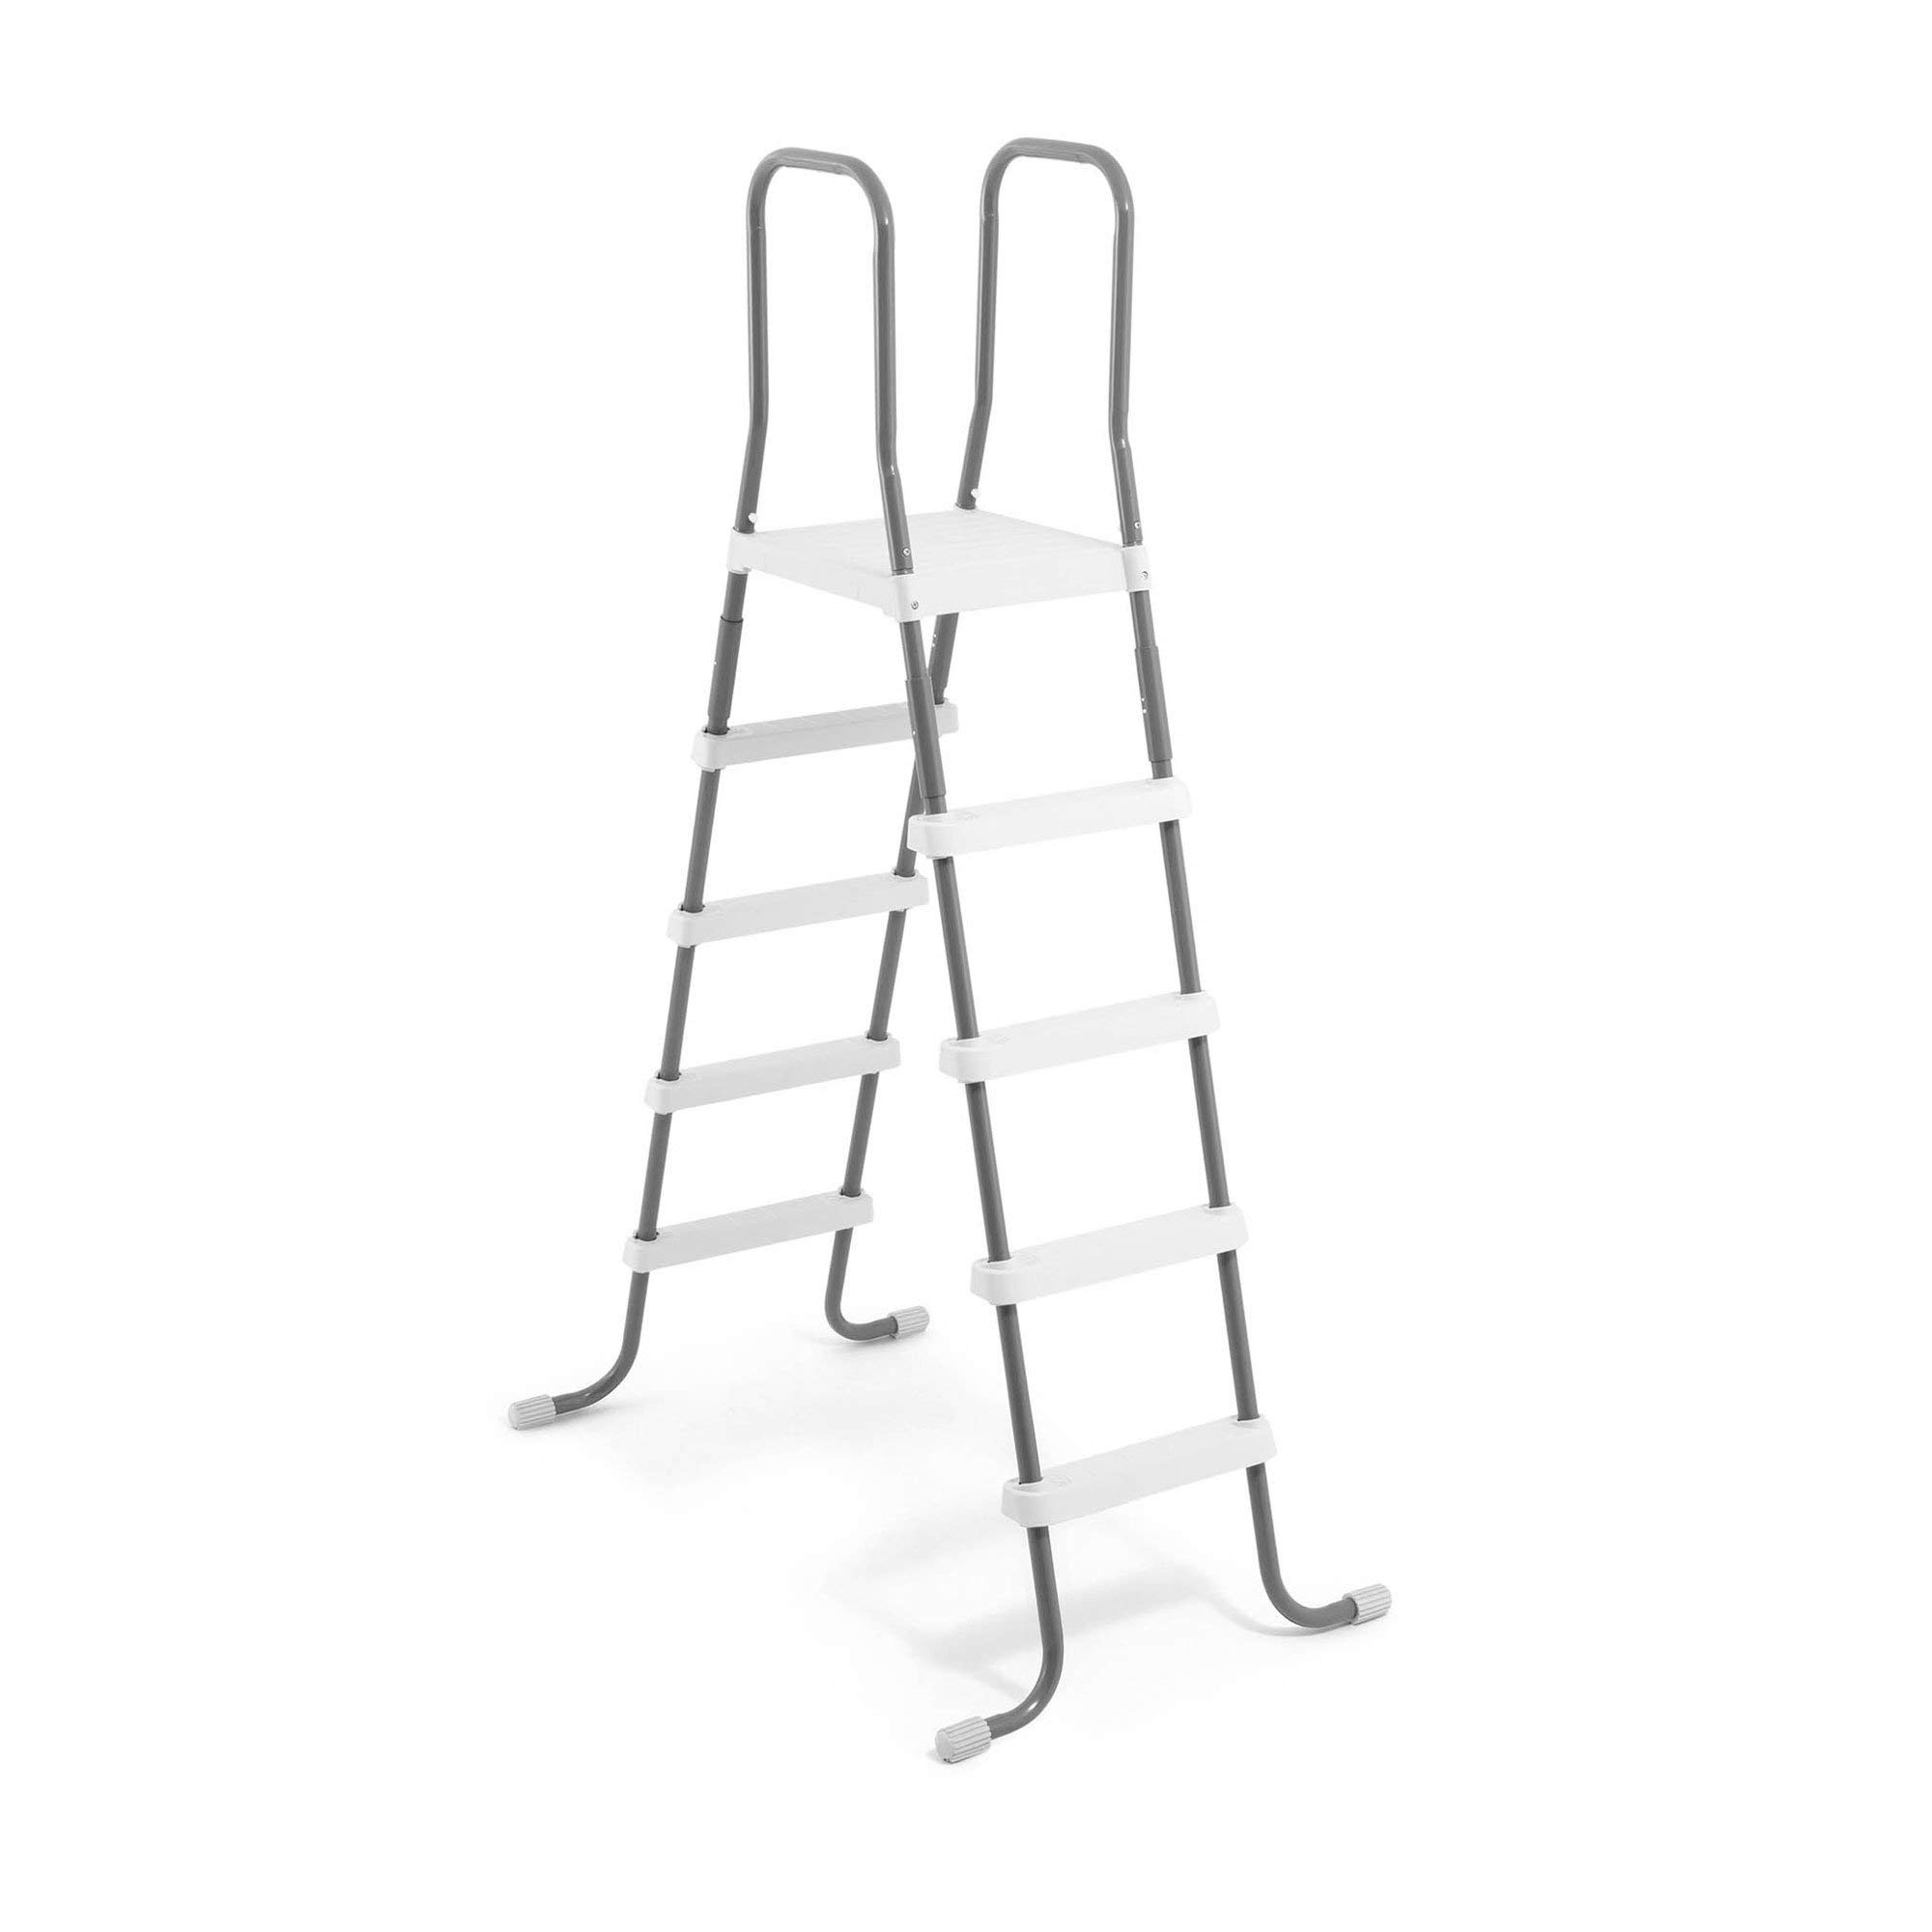 Intex Steel Frame Above Ground Swimming Pool Ladder for 52 Inch Wall Height Pools by Intex